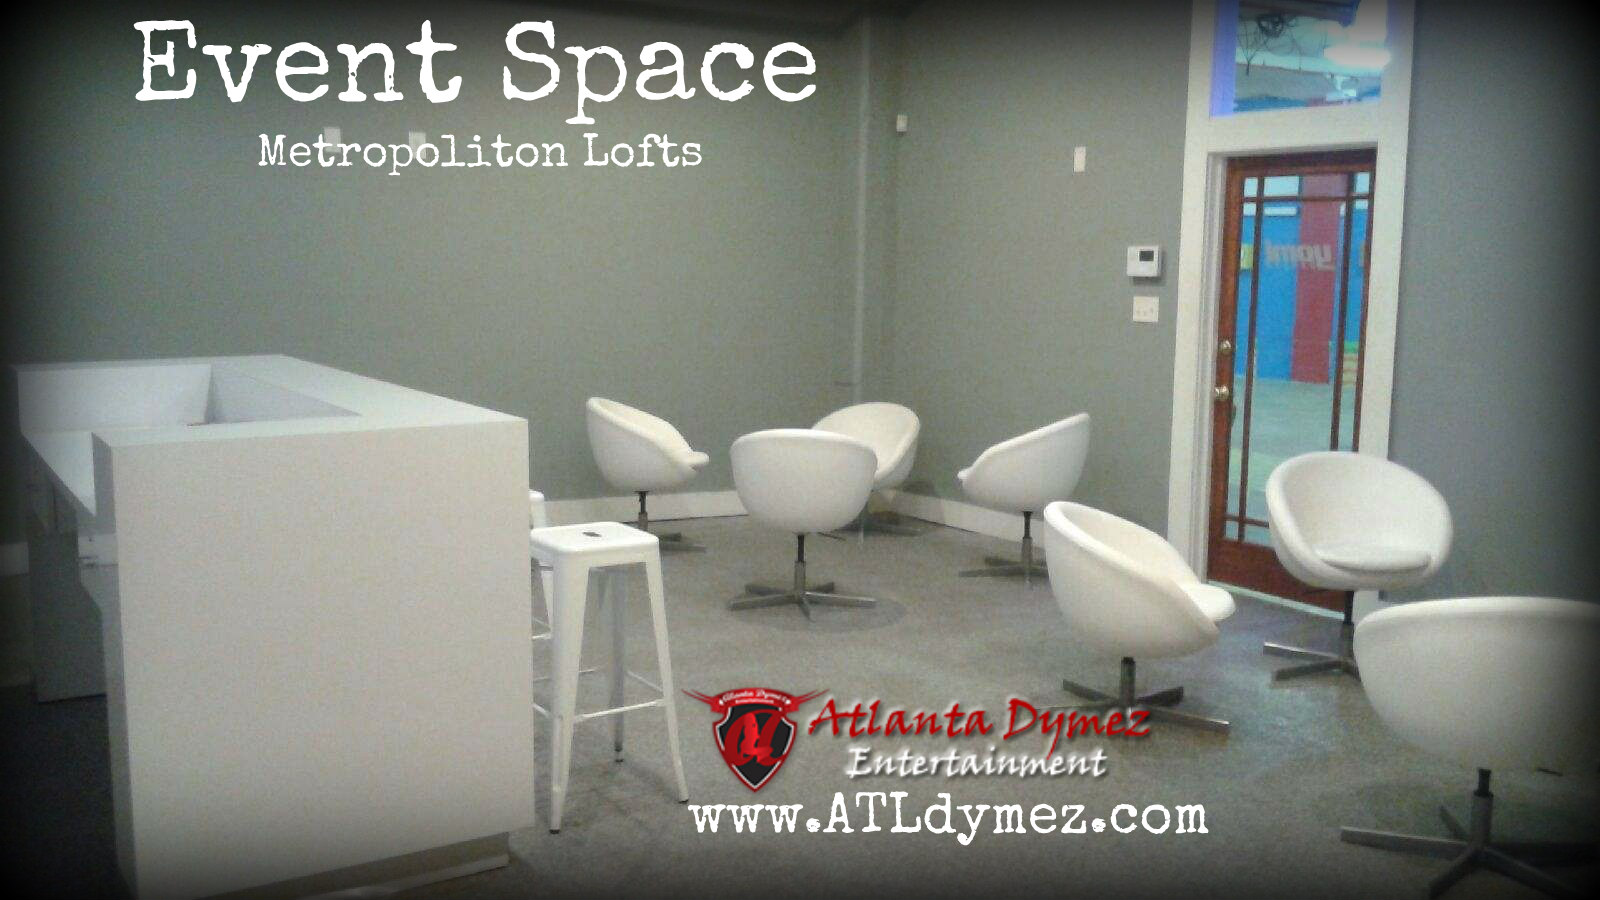 Event Space (Metropolitan Lofts)